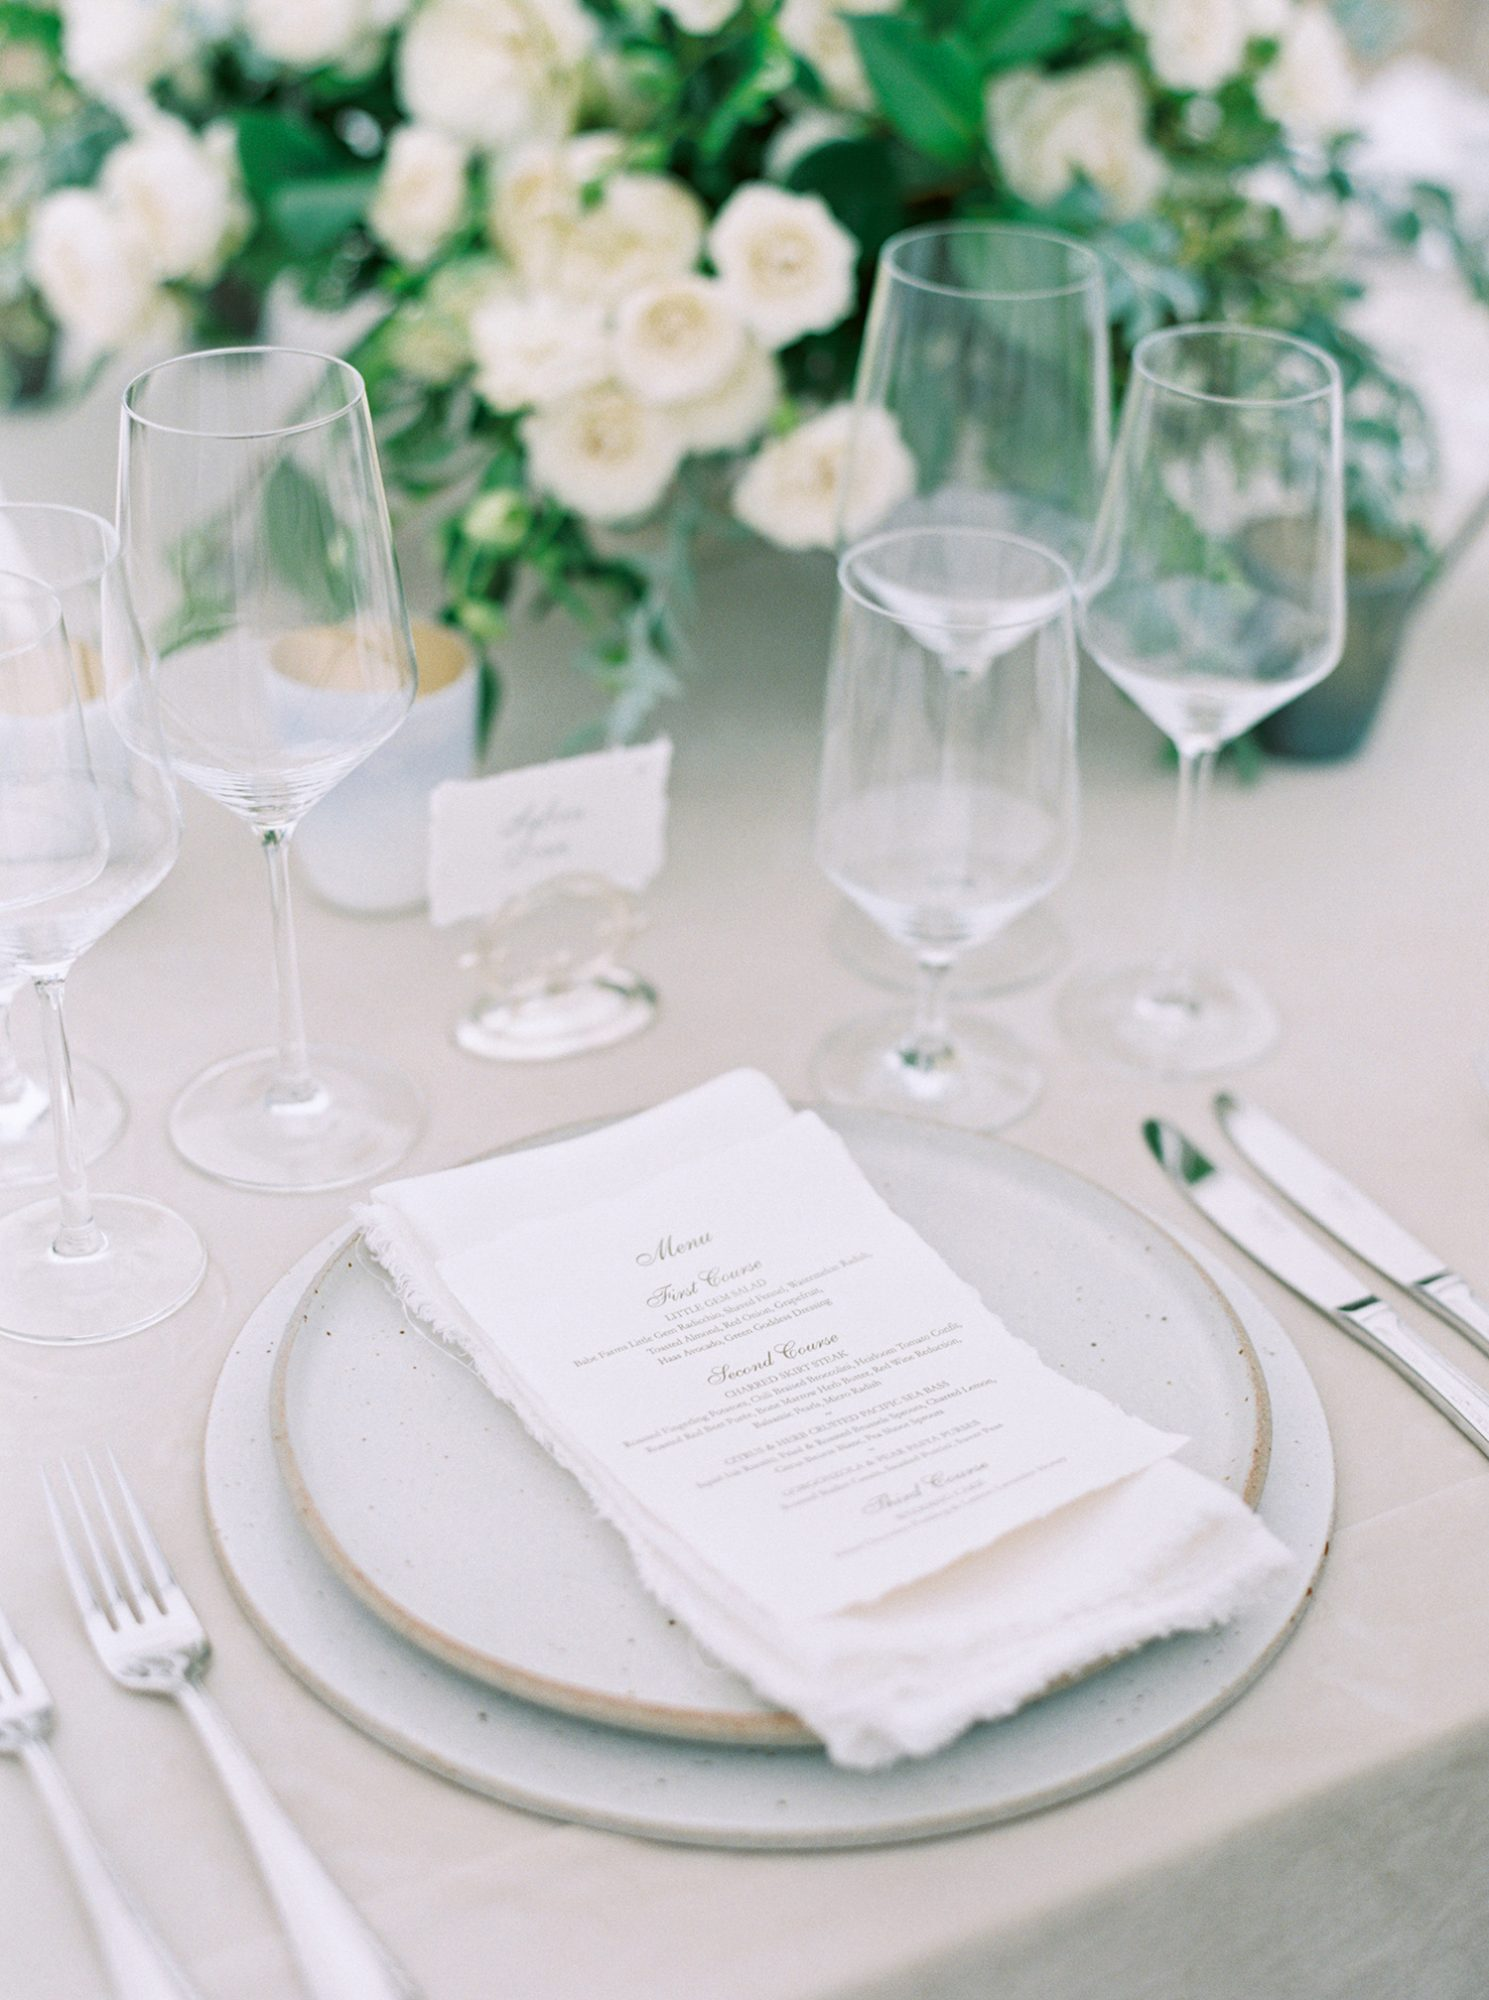 katie mike wedding place settings with menus